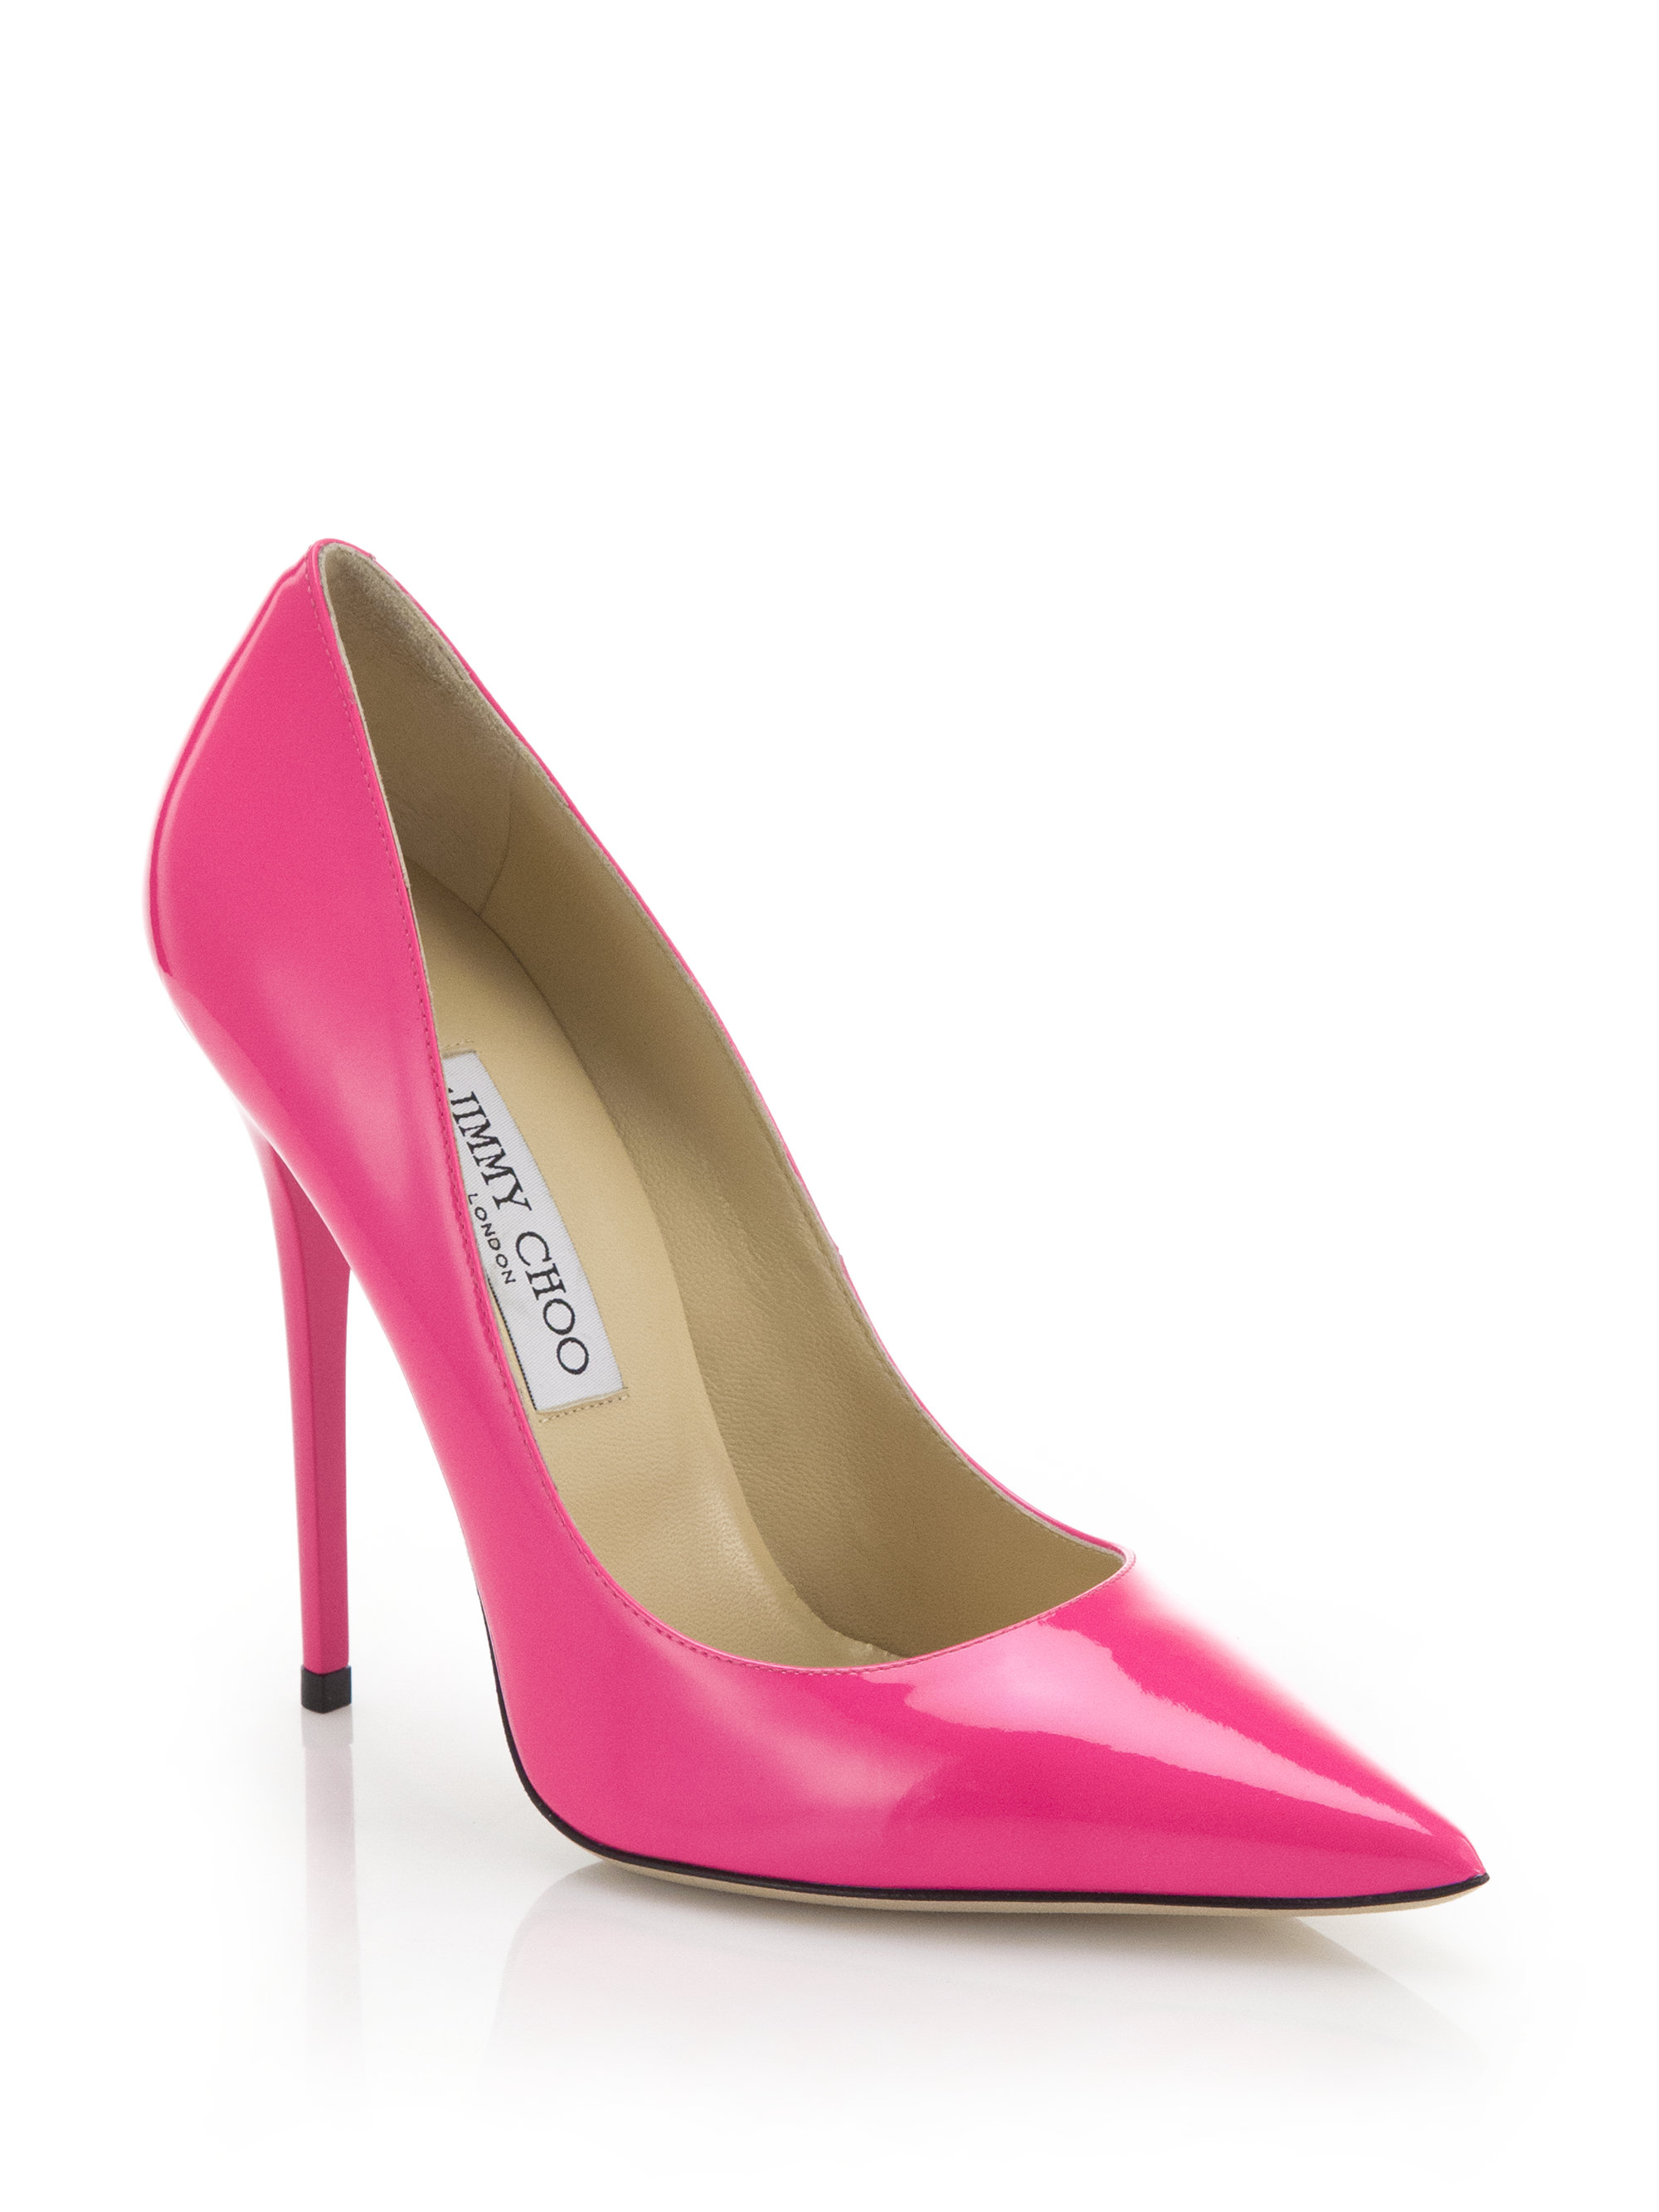 031d620d2f2 Lyst - Jimmy Choo Anouk Patent Leather Pumps in Pink